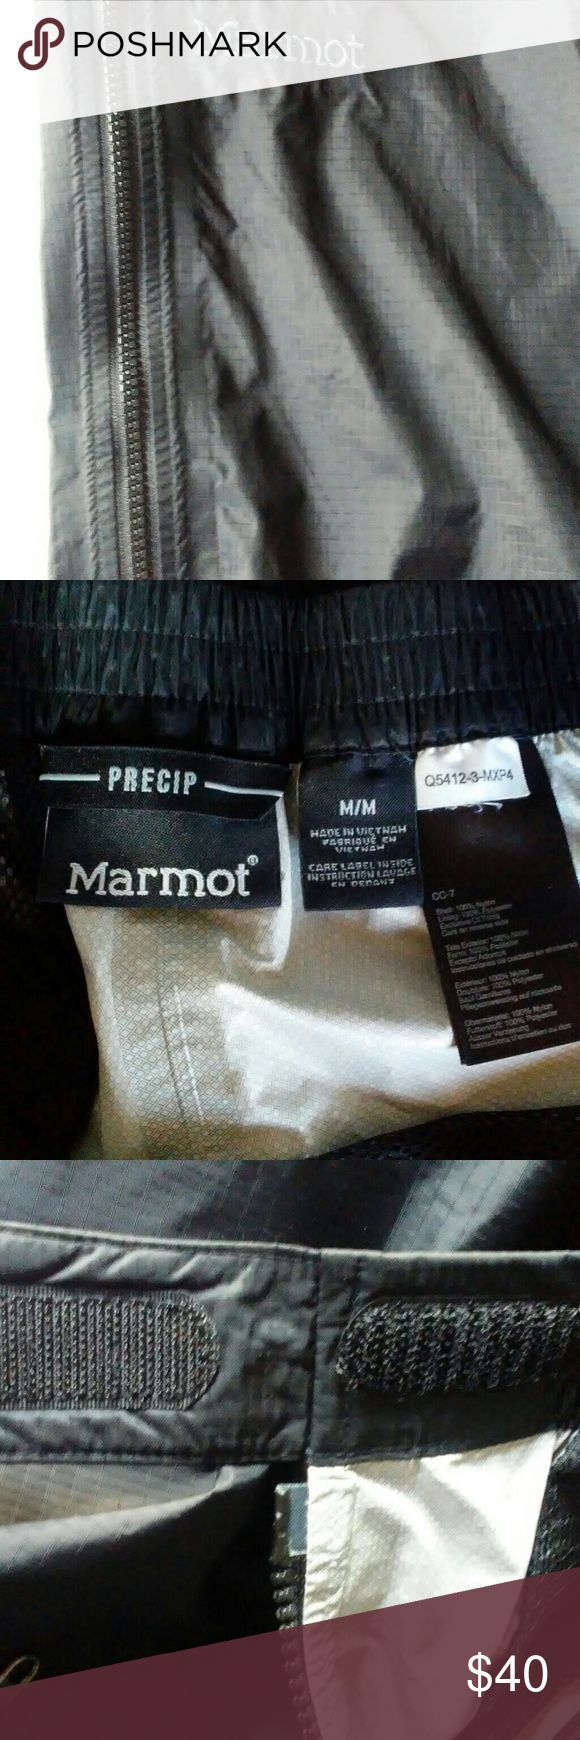 PRECIP MARMOT. Women's Full zip pants These are black windpants in very good shape. Worn once, no tears, snags or holes.  These pants zip up on both sides top to bottom with velcro at ends and buttons on bottom. 2 front pocket with zippers. One bk pocket with zipper.  Elastic waistline.      They are 42 in in length. Marmot Pants Track Pants & Joggers